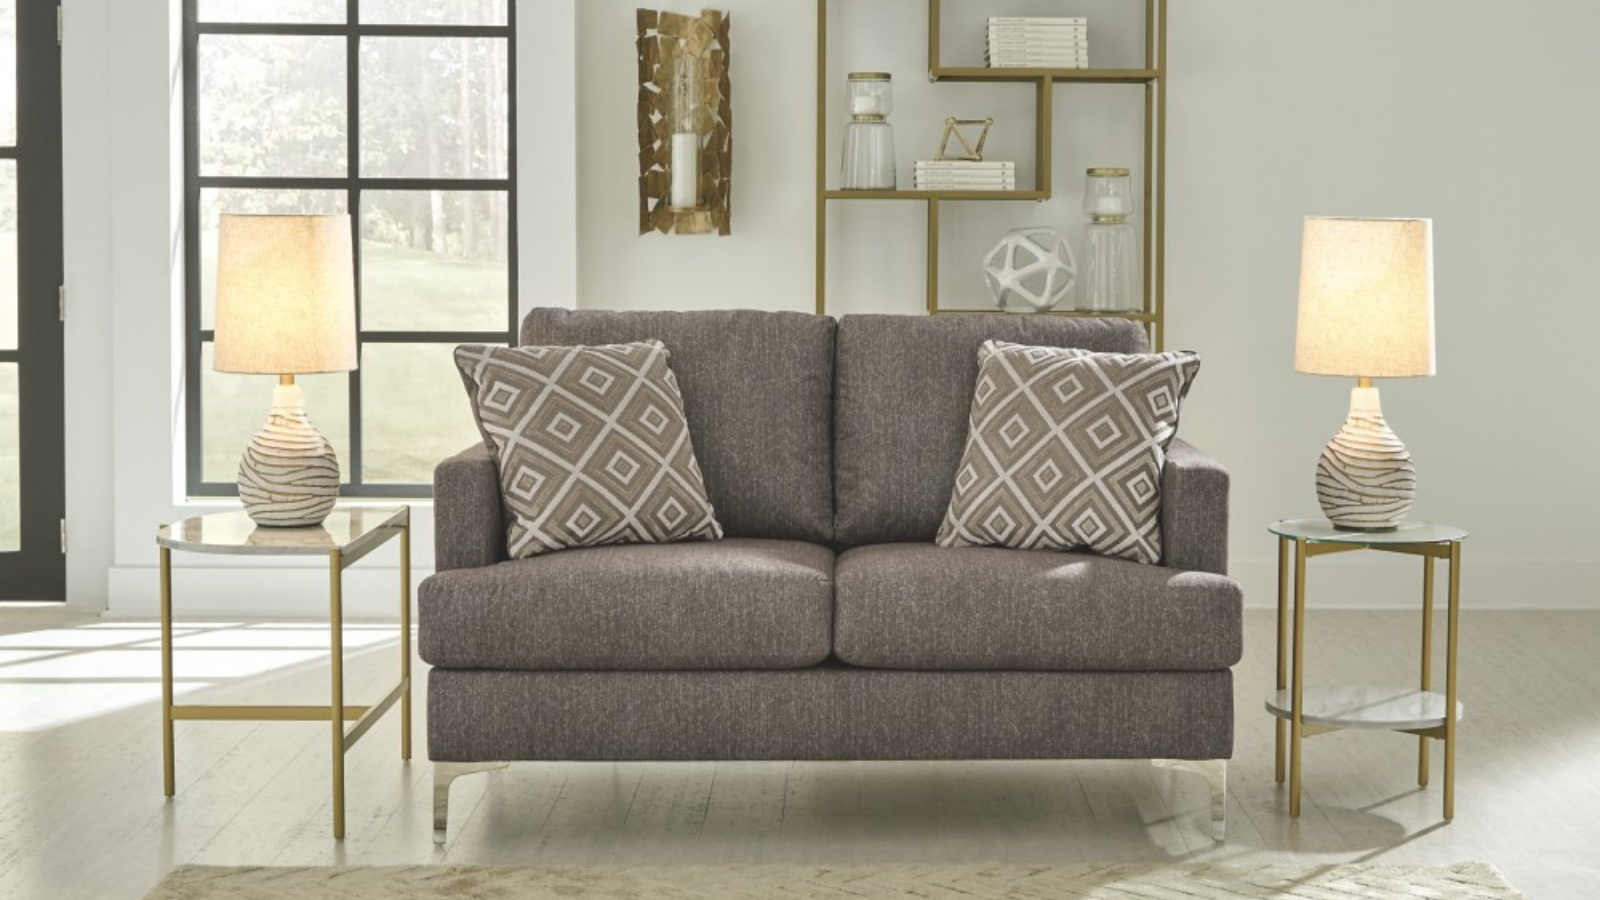 Fall in Love With Loveseats - Featured 2